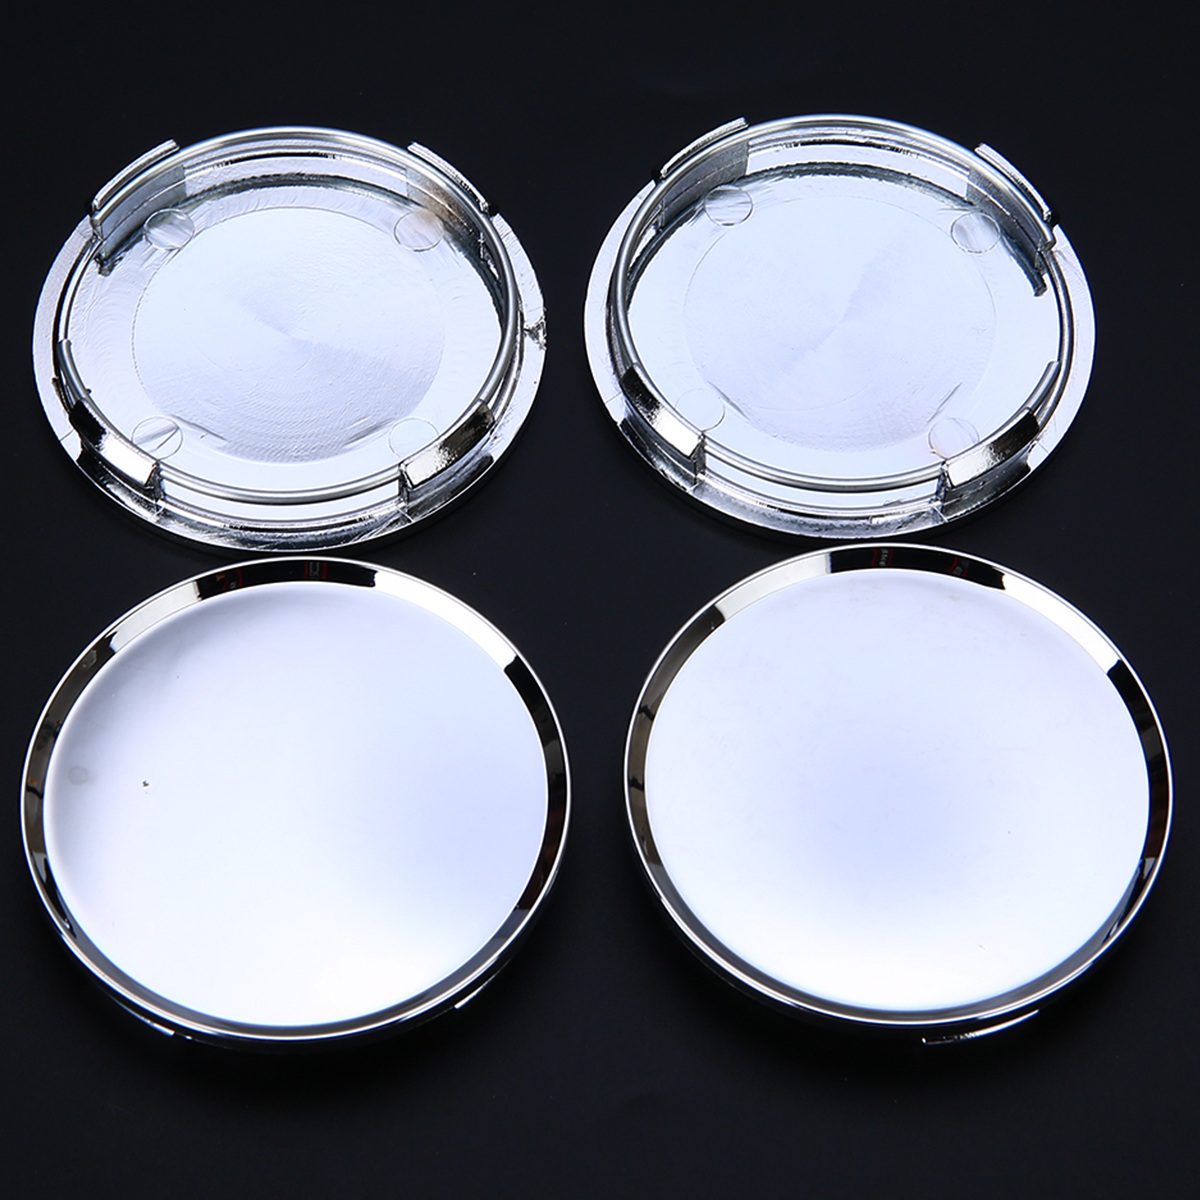 Image 4 - 4pcs/set Universal 63mm Car Vehicle Wheel Center Hub Cap Cover Silver For Most Car Trucks Vehicles-in Wheel Center Caps from Automobiles & Motorcycles